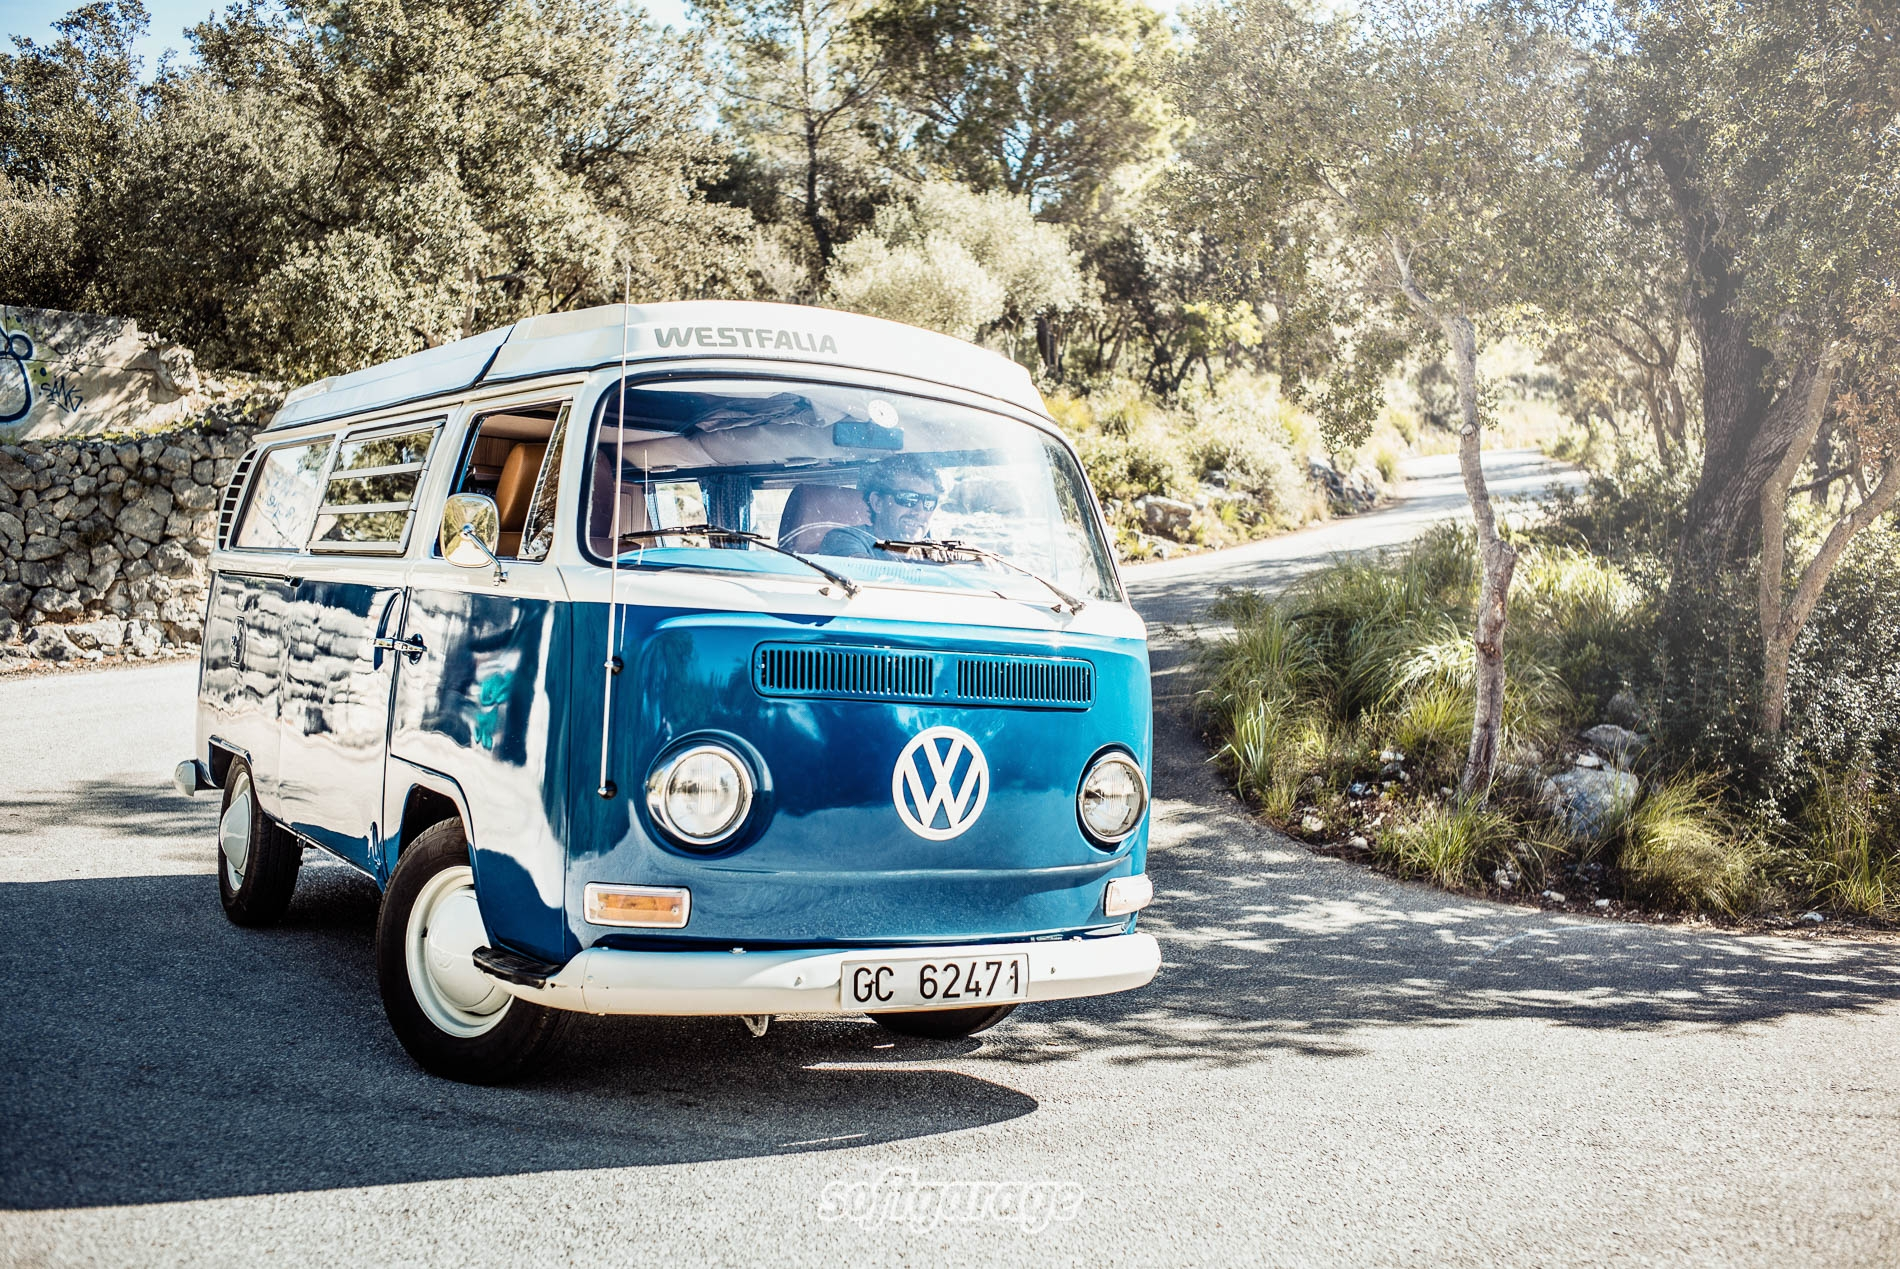 softgarage VW T2 Westfalia